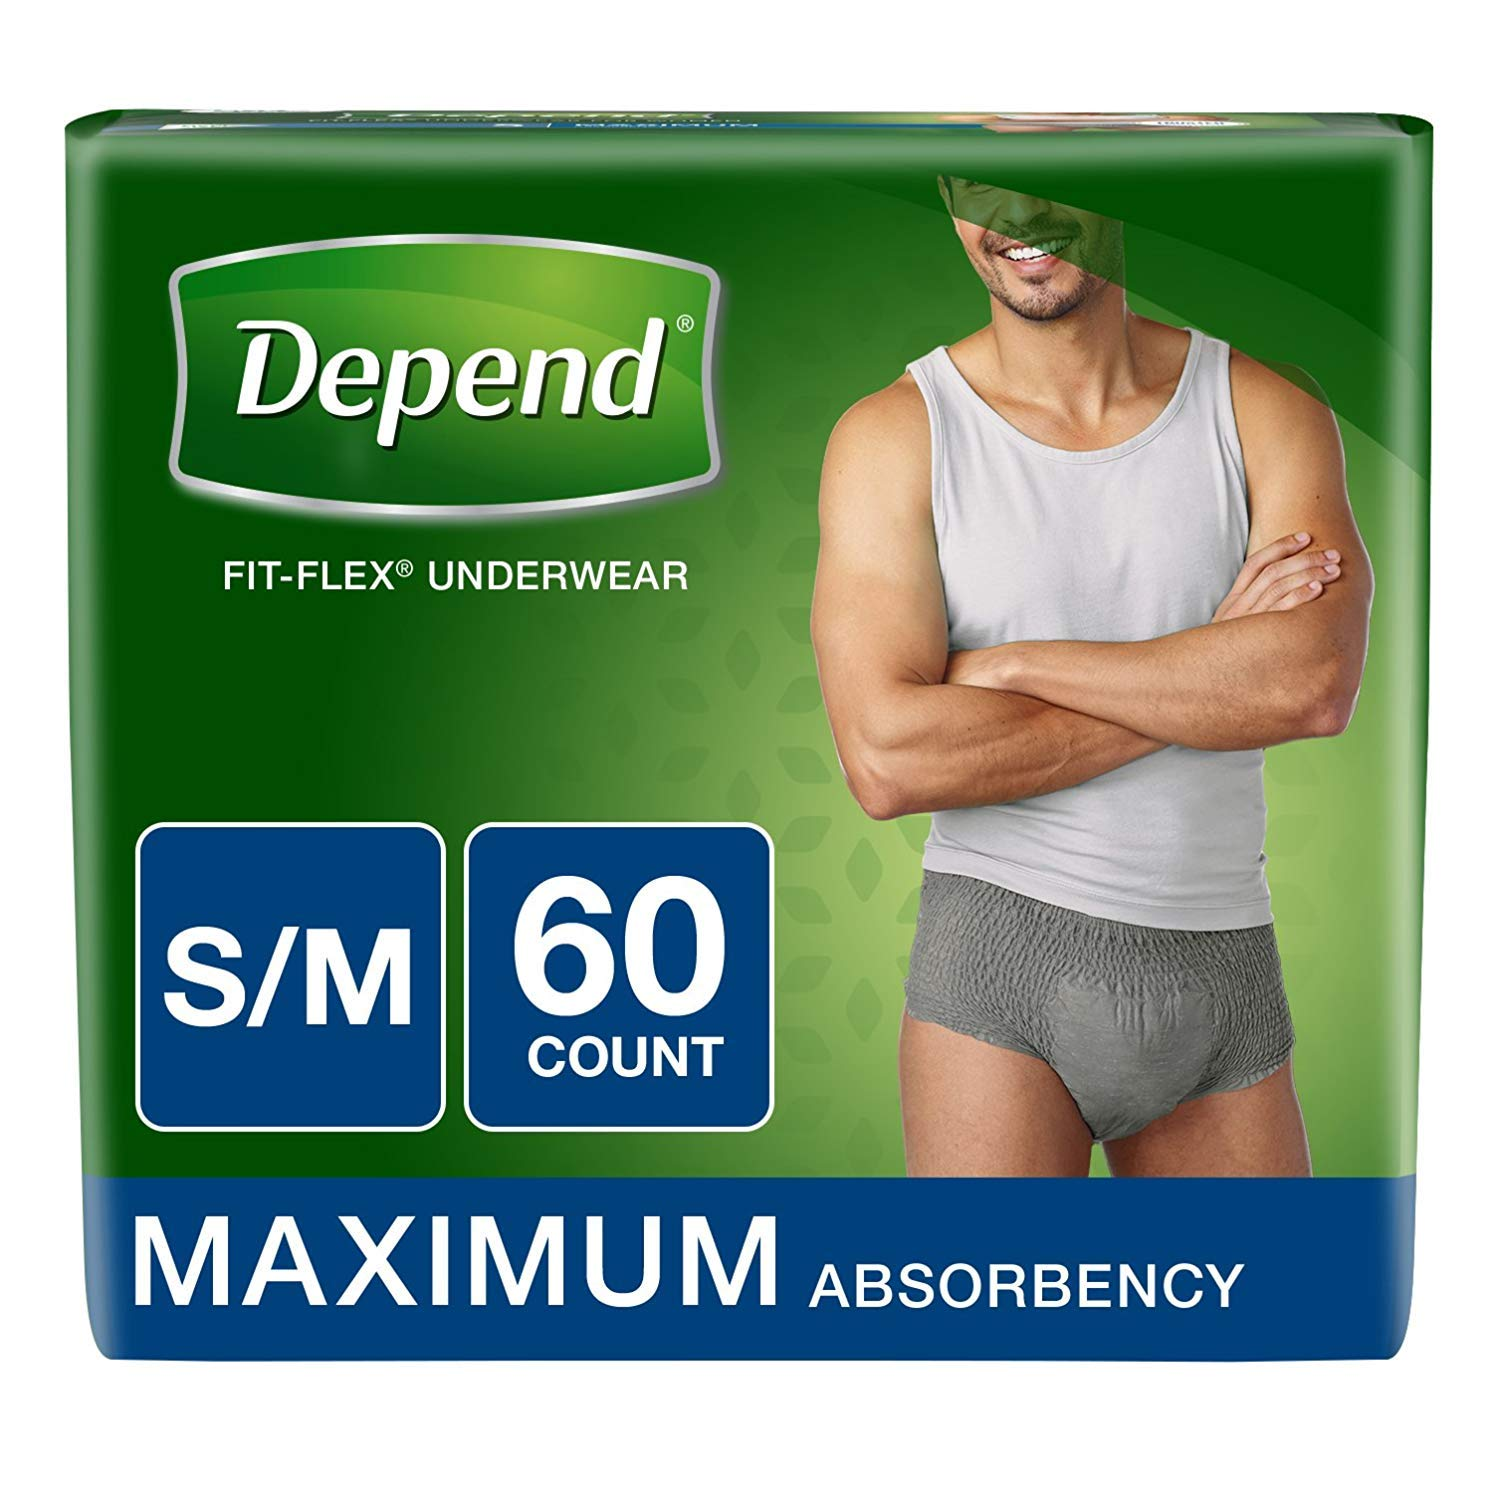 Depend FIT-Flex Incontinence Underwear for Men, Maximum Absorbency, S/M, Gray, 60 Count (3-Pack(60 Count))